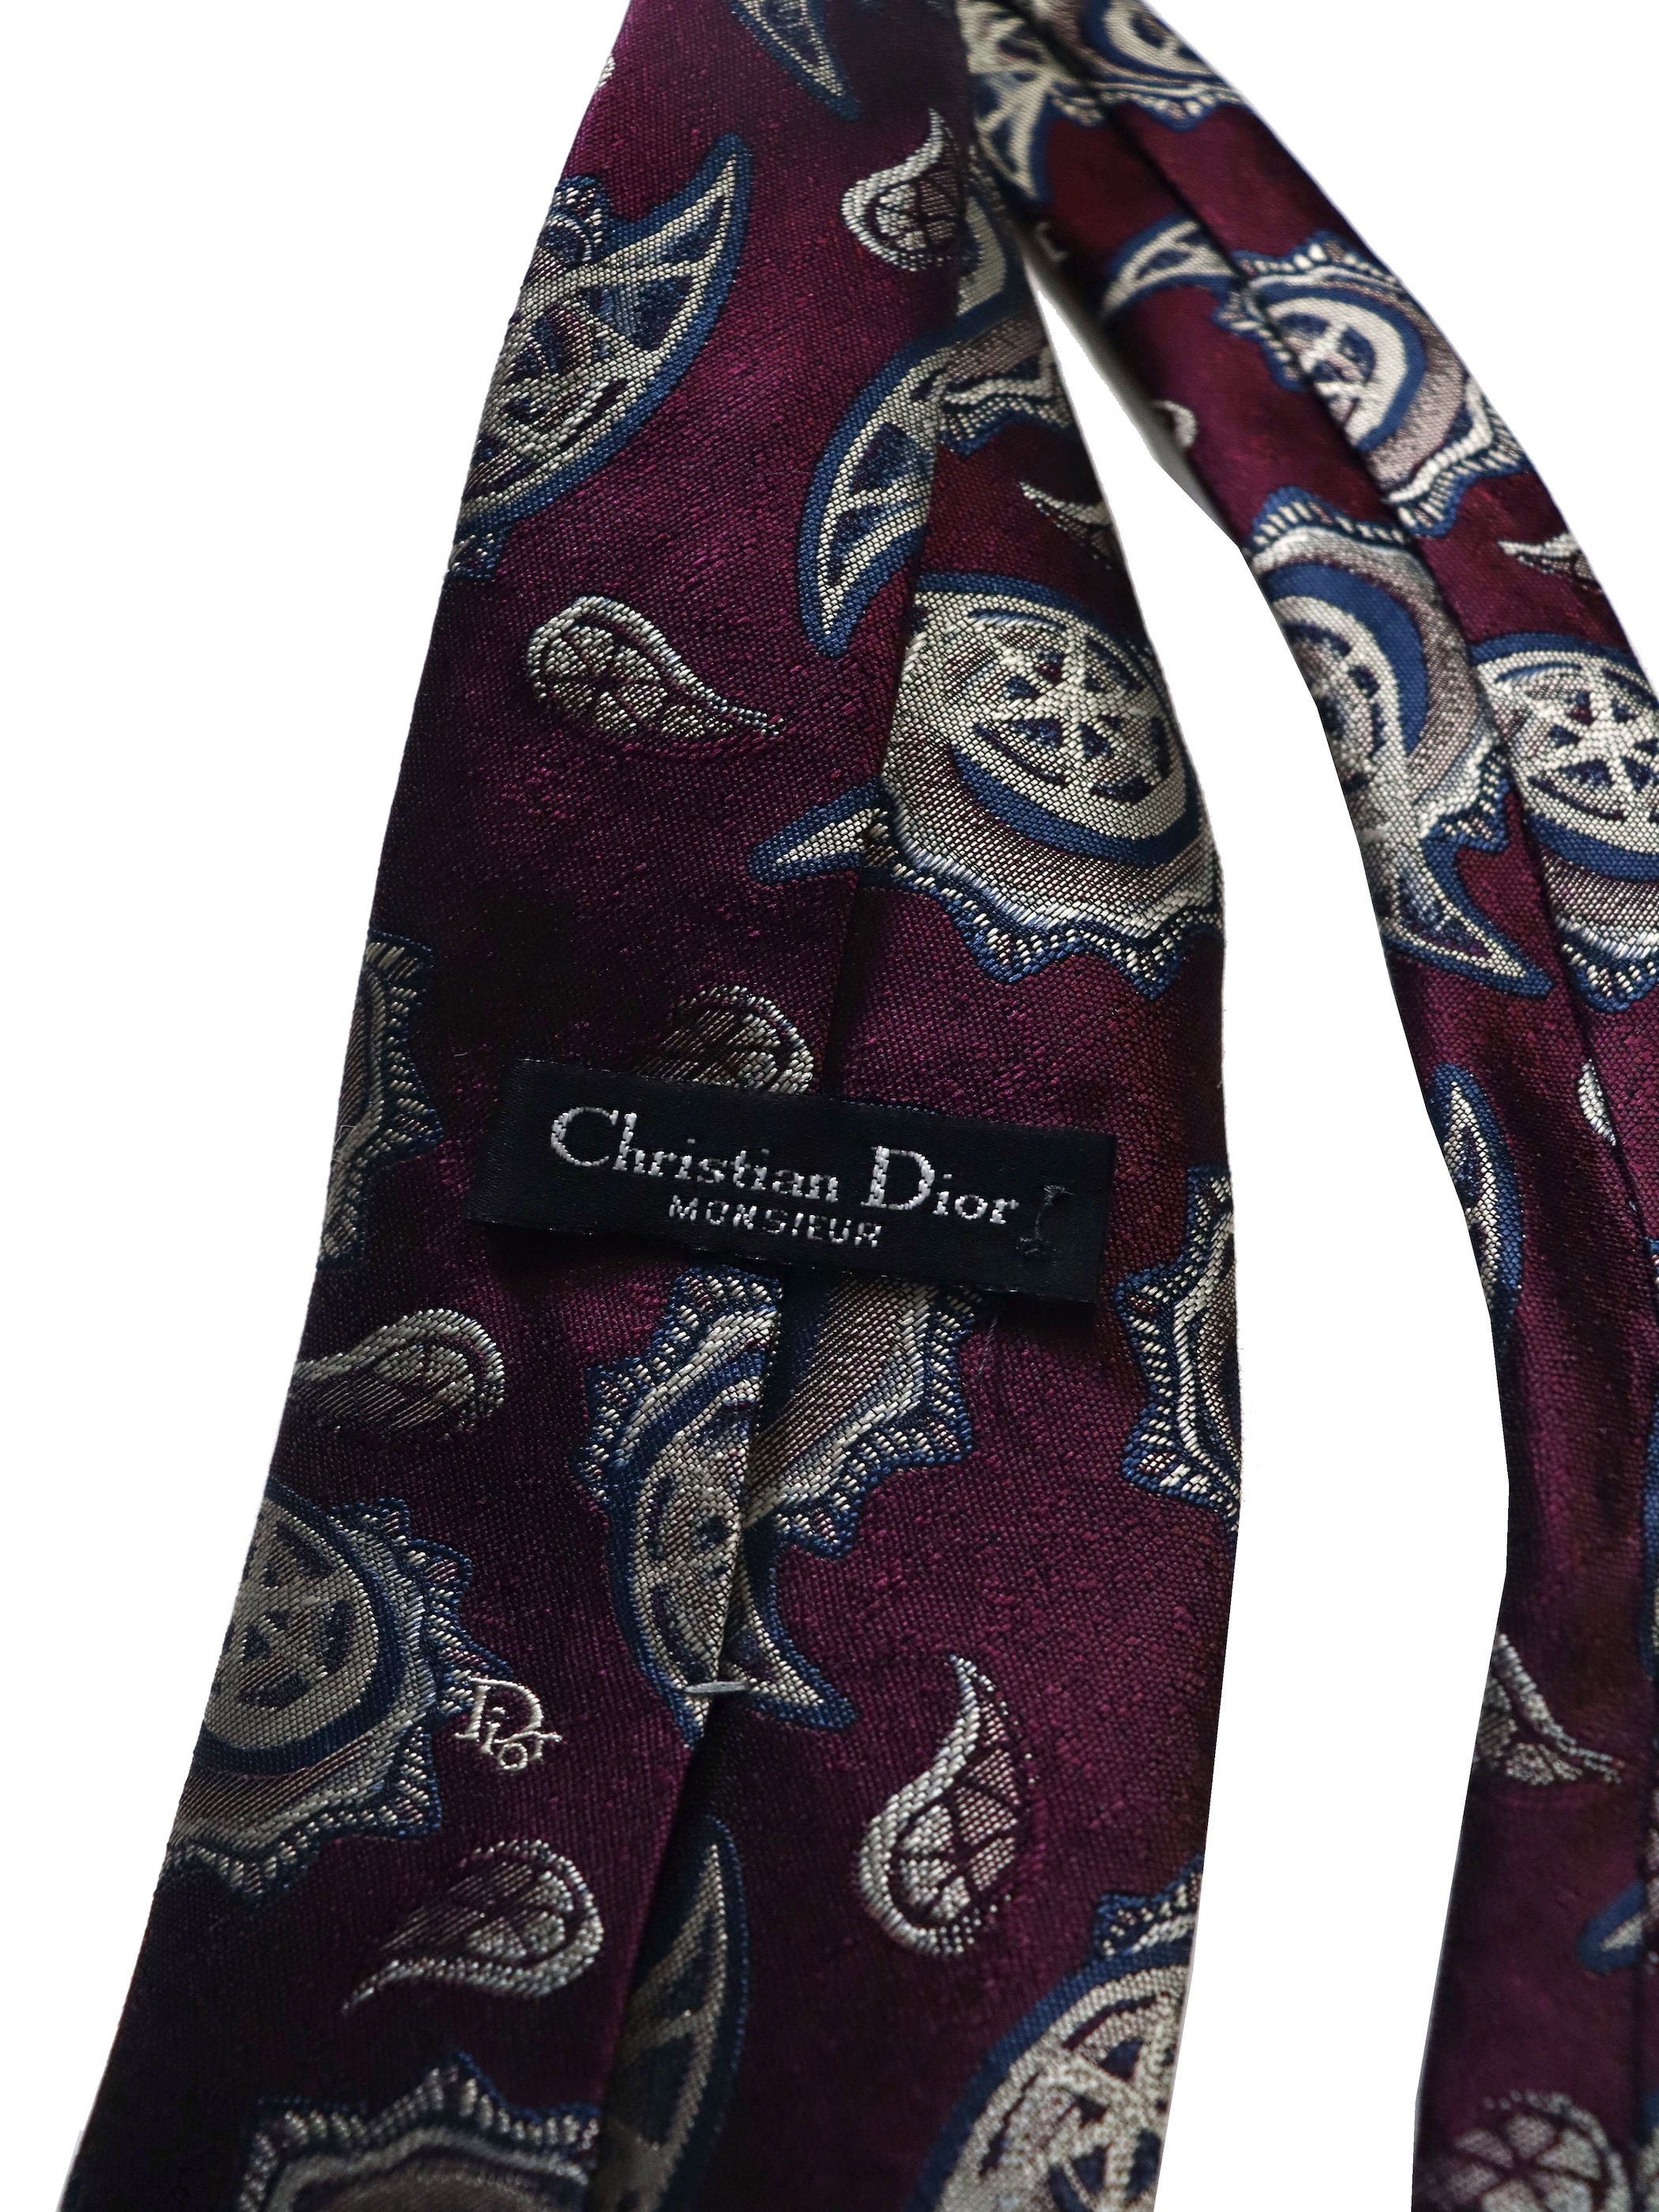 Christian Dior MONSIEUR Poly Silk Paisley Tie / Made in USA